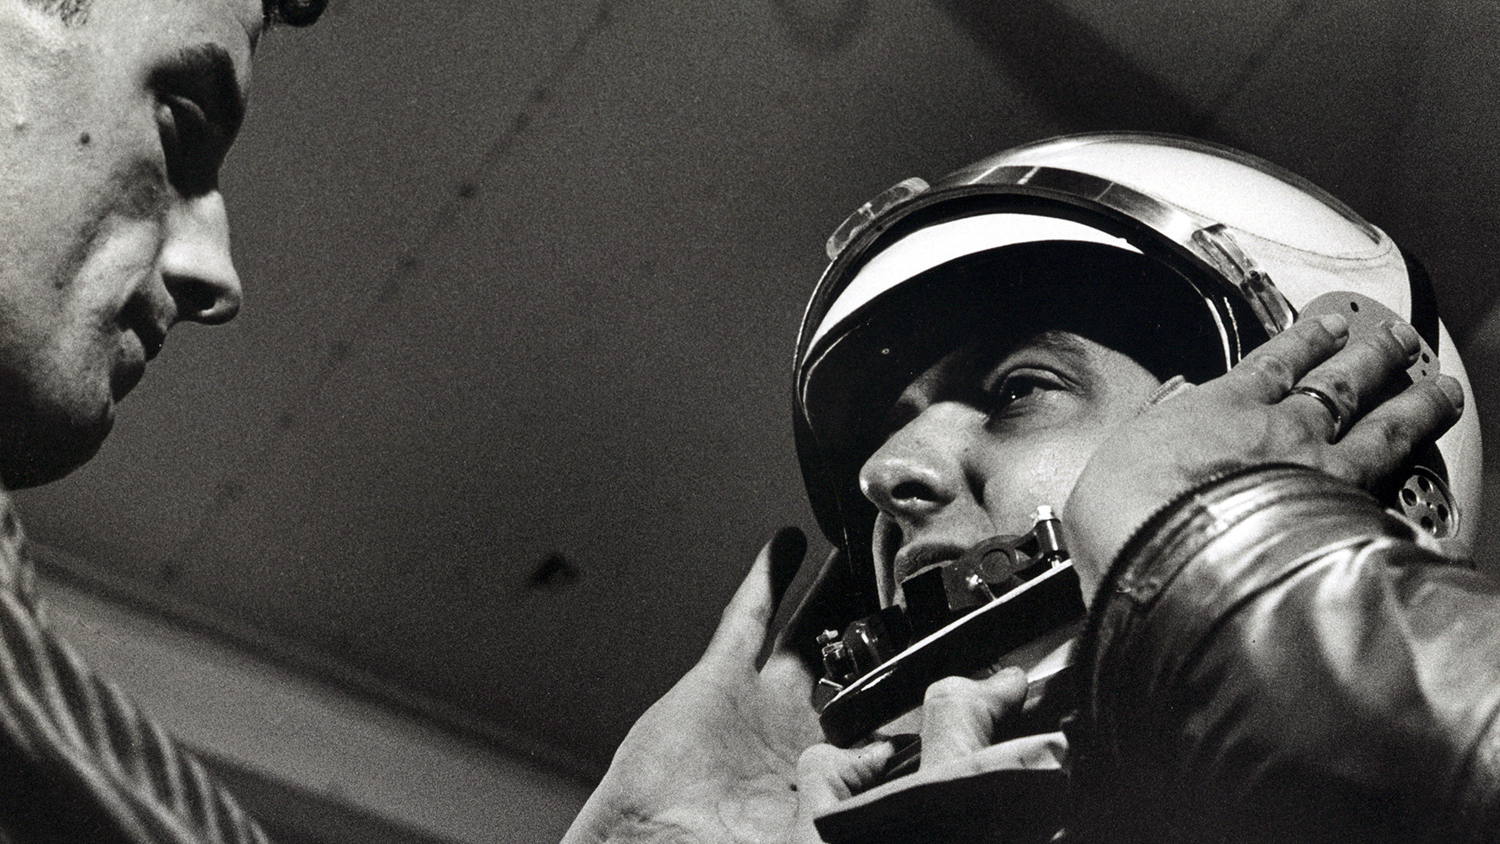 A black and white photo of a man fitting a space helmet.